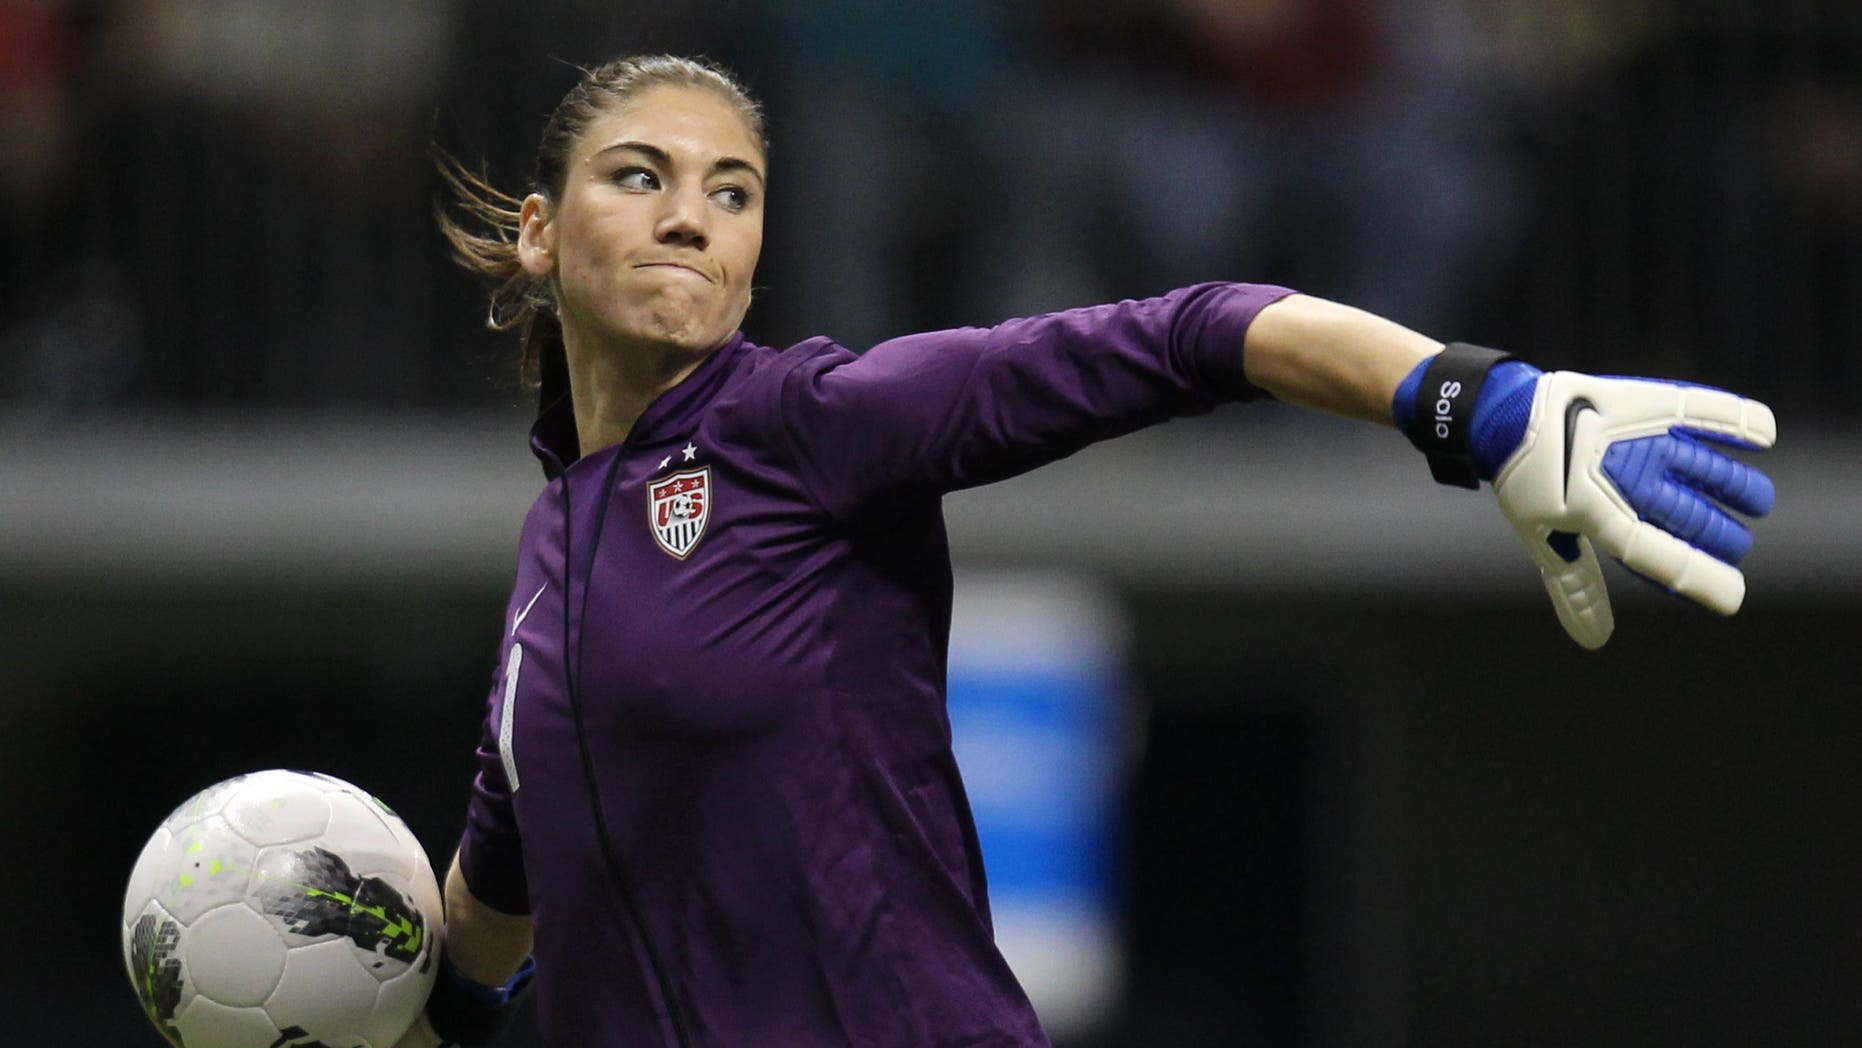 Jan. 27, 2012: In this file photo, United States goalkeeper Hope Solo (1) clears the ball from in front of her net during the second half against Costa Rica at the CONCACAF women's Olympic qualifying soccer game action at B.C. Place in Vancouver, Canada.